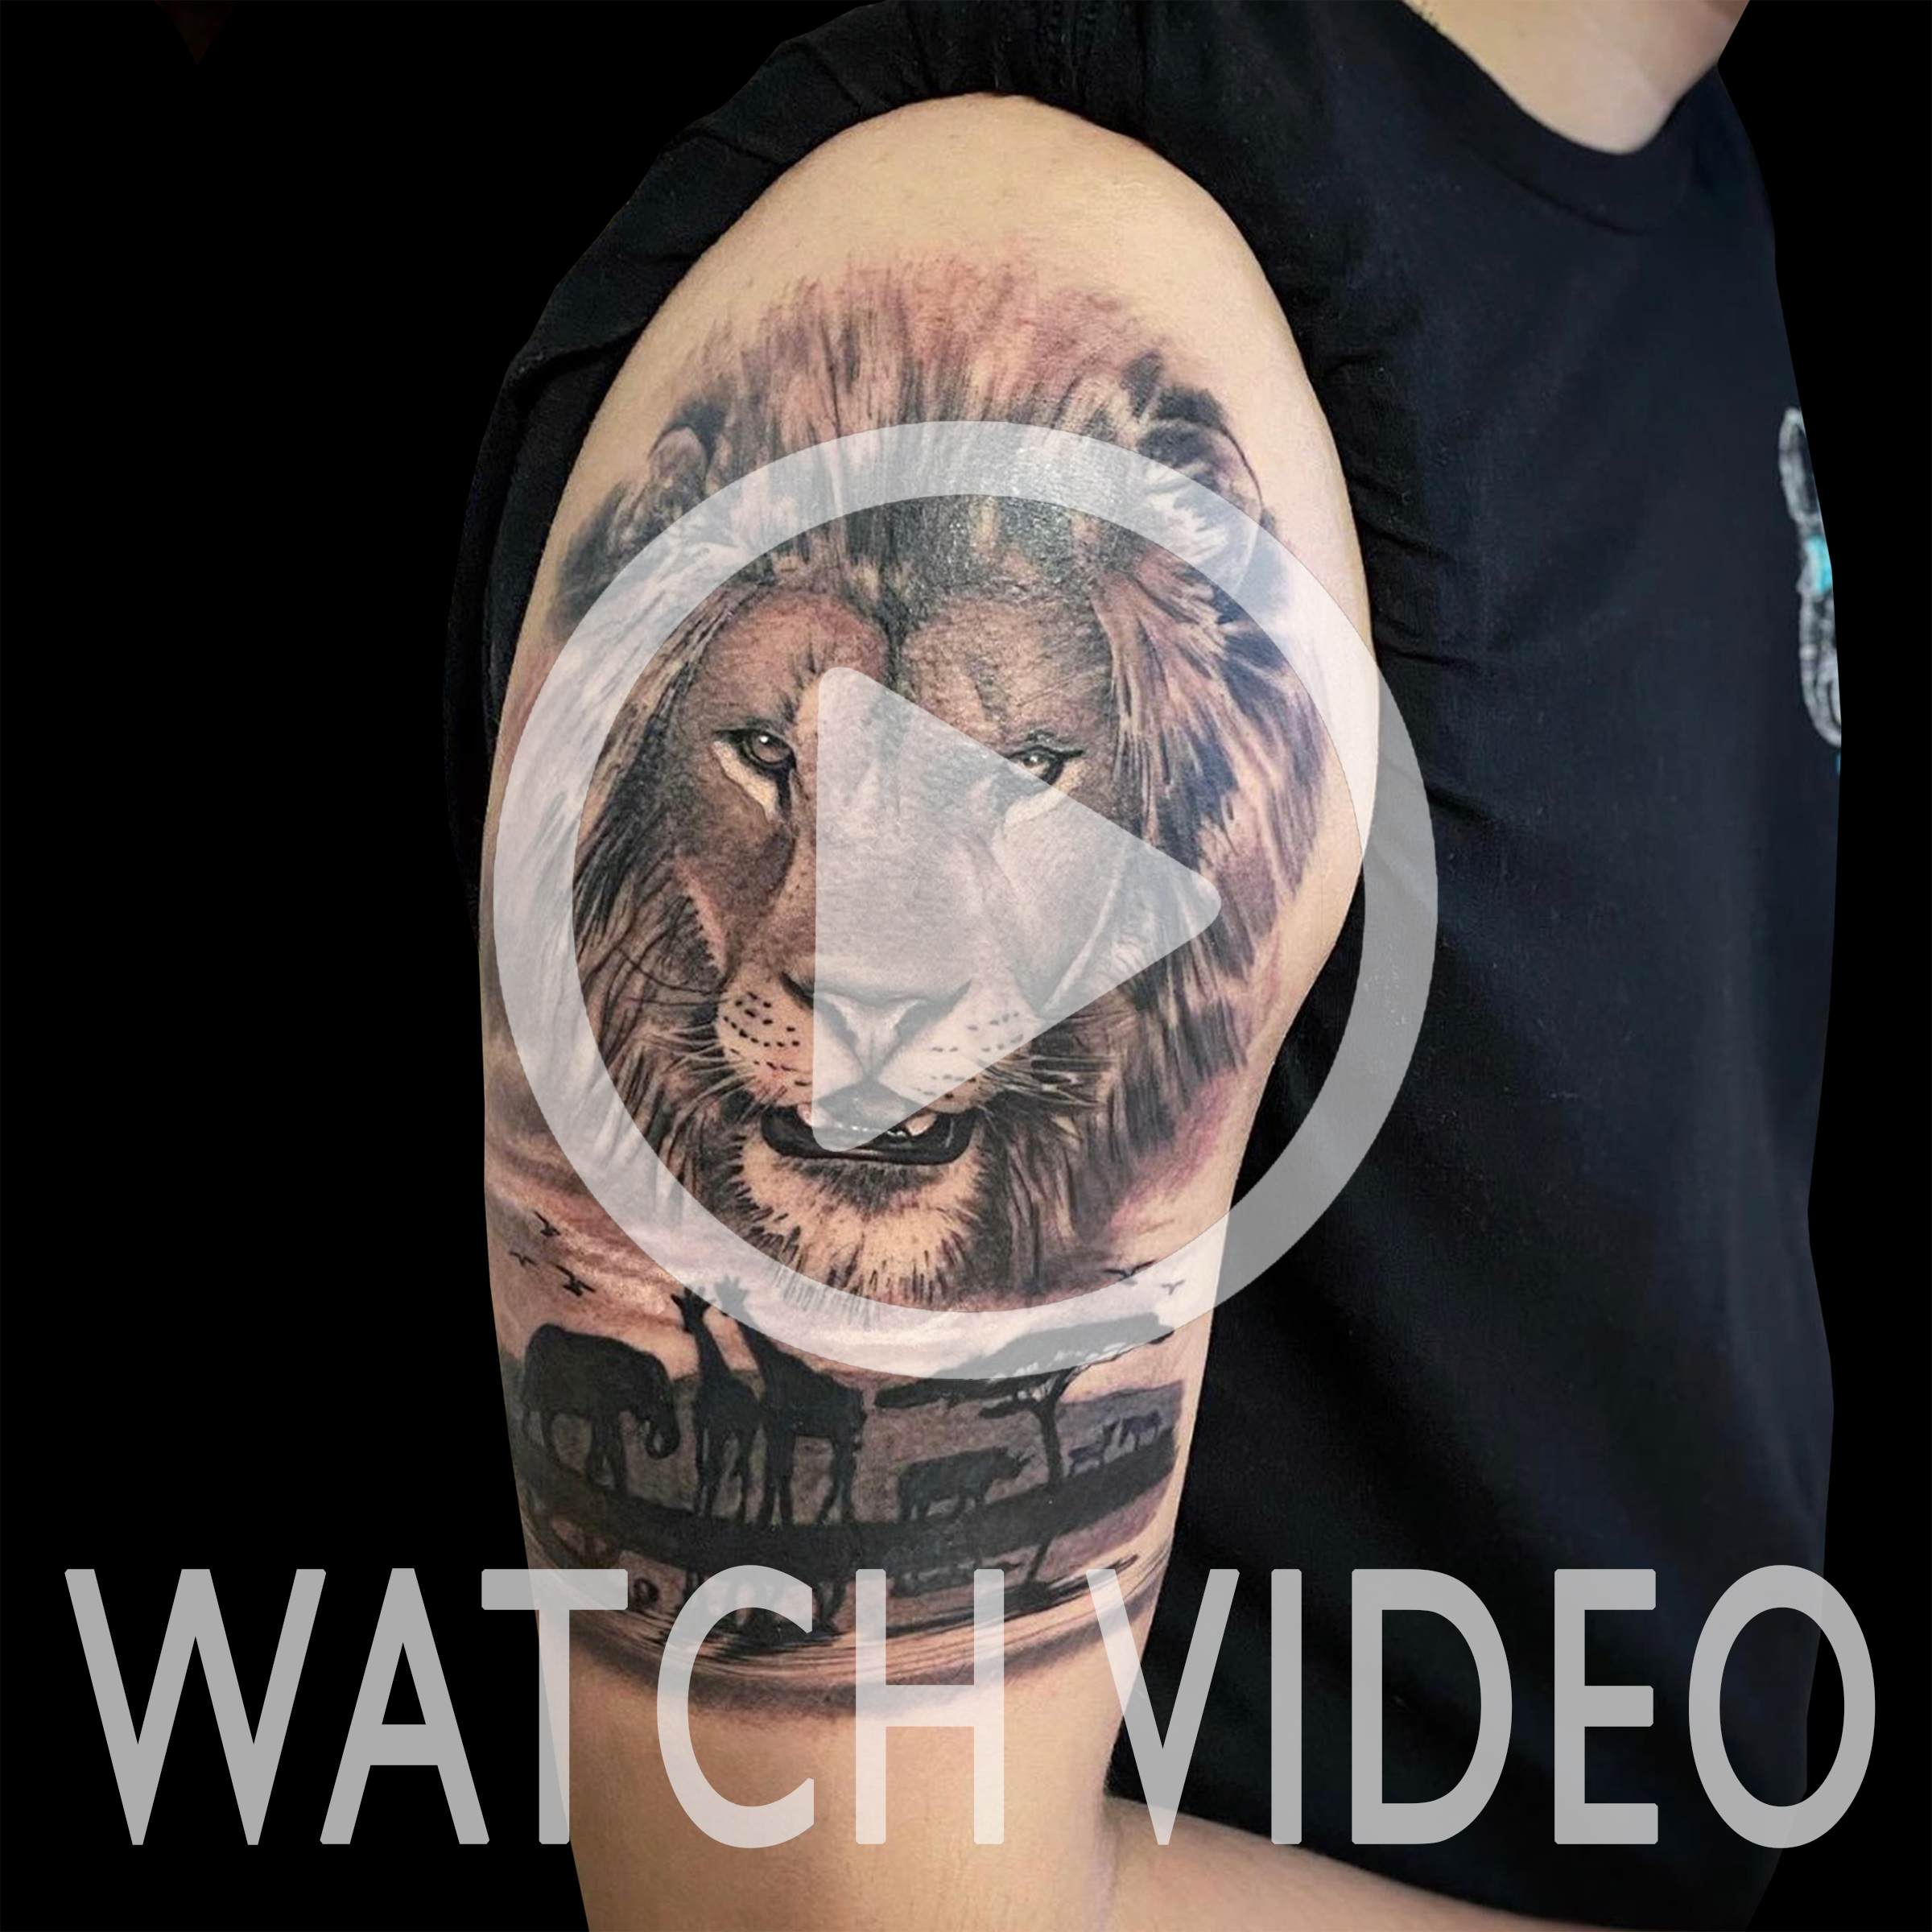 LarkTattoo, KevinSoomai, KevinSoomaiLarkTattoo, Tattoo, Lion, LionTattoo, Giraffe, GiraffeTattoo, Elephant, ElephantTattoo, Rhino, RhinoTattoo, Zebra, ZebraTattoo, Safari, SafariTattoo, Animal, AnimalTattoo, Nature, NatureTattoo, TattooHalfSleeve, HalfSleeve, HalfSleeveTattoo, Realism, RealismTattoo, Realistic, RealisticTattoo, BNG, BNGTattoo, BlackAndGray, BlackAndGrayTattoo, BlackAndGrey, BlackAndGreyTattoo, BlackAndGrayRealism, BlackAndGrayRealismTattoo, BlackAndGreyRealism, BlackAndGreyRealismTattoo, Tattoos , TattooArtist, Tattoist, Tattooer, LongIslandTattooArtist, LongIslandTattooer, LongIslandTattoo, TattooOfTheDay, Tat, Tats, Tatts, Tatted, Inked, Ink, TattooInk, AmazingInk, AmazingTattoo, BodyArt, LarkTattooWestbury, Westbury, LongIsland, NY, NewYork, USA, Art, Tattedup, InkedUp, LarkTattoos